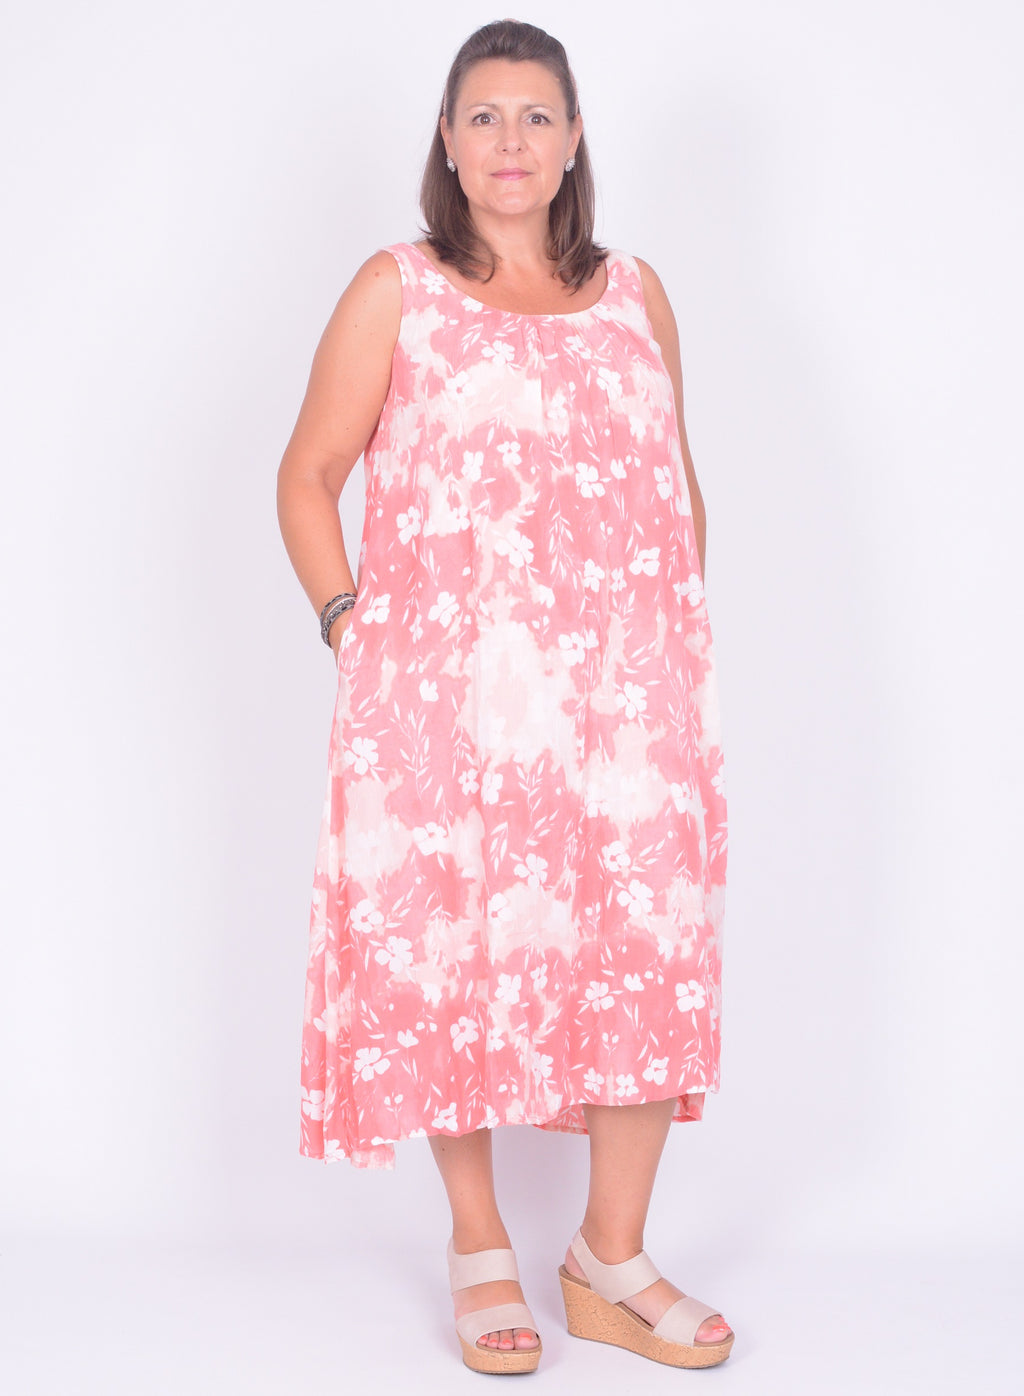 Sleeveless Floral Print Dress - 4680 - Pure Plus Clothing